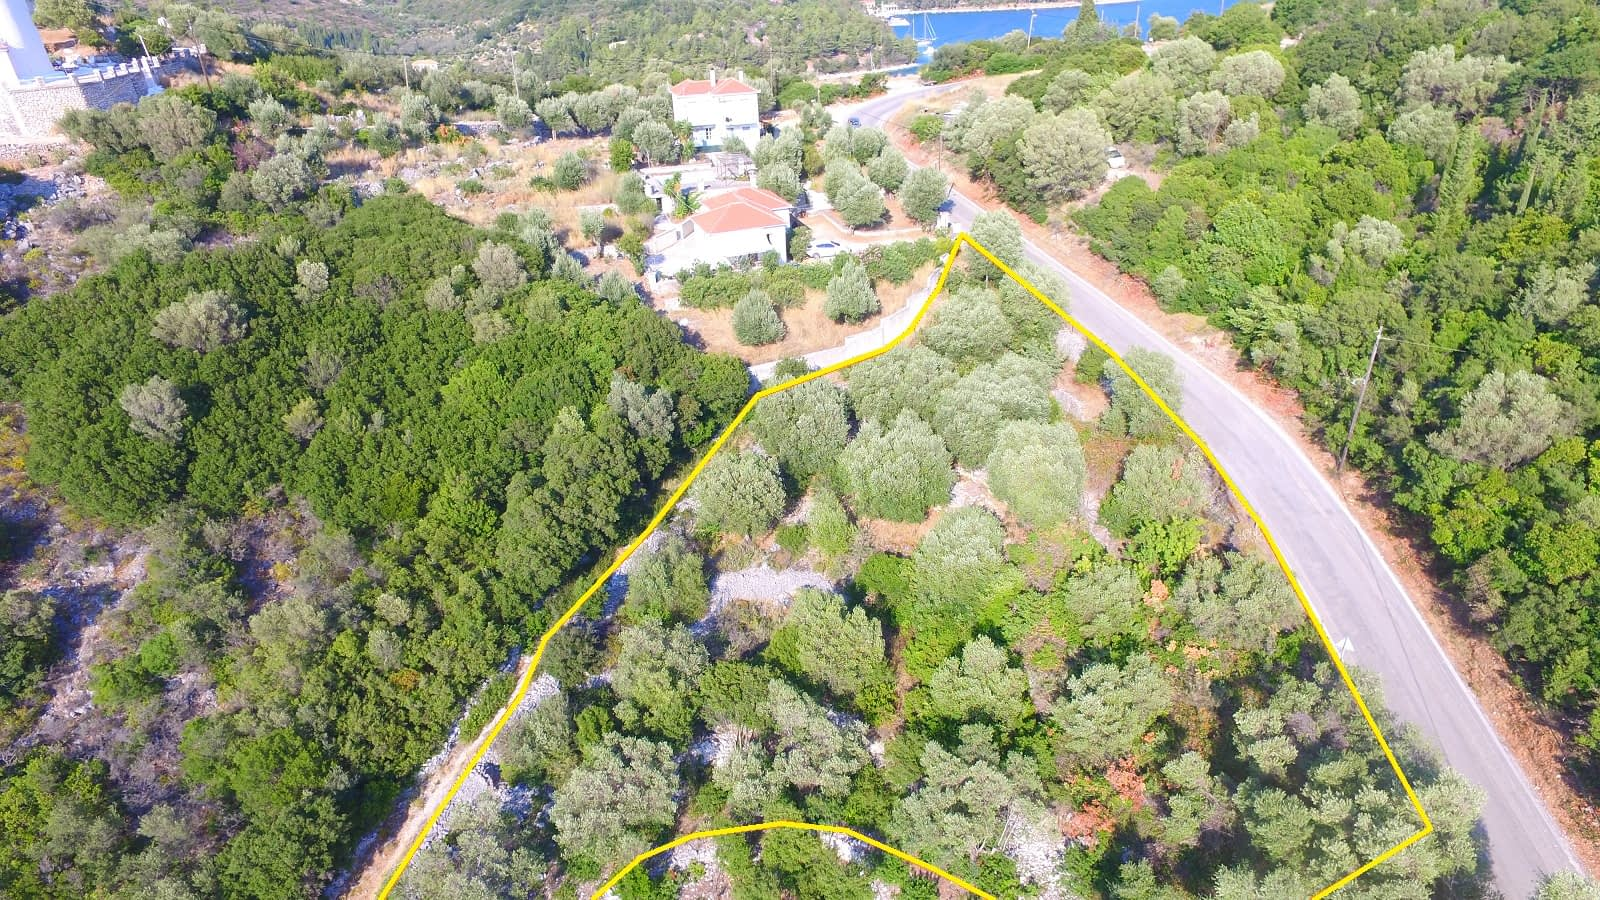 Aerial view of land for sale Ithaca Greece Dexa Vathi